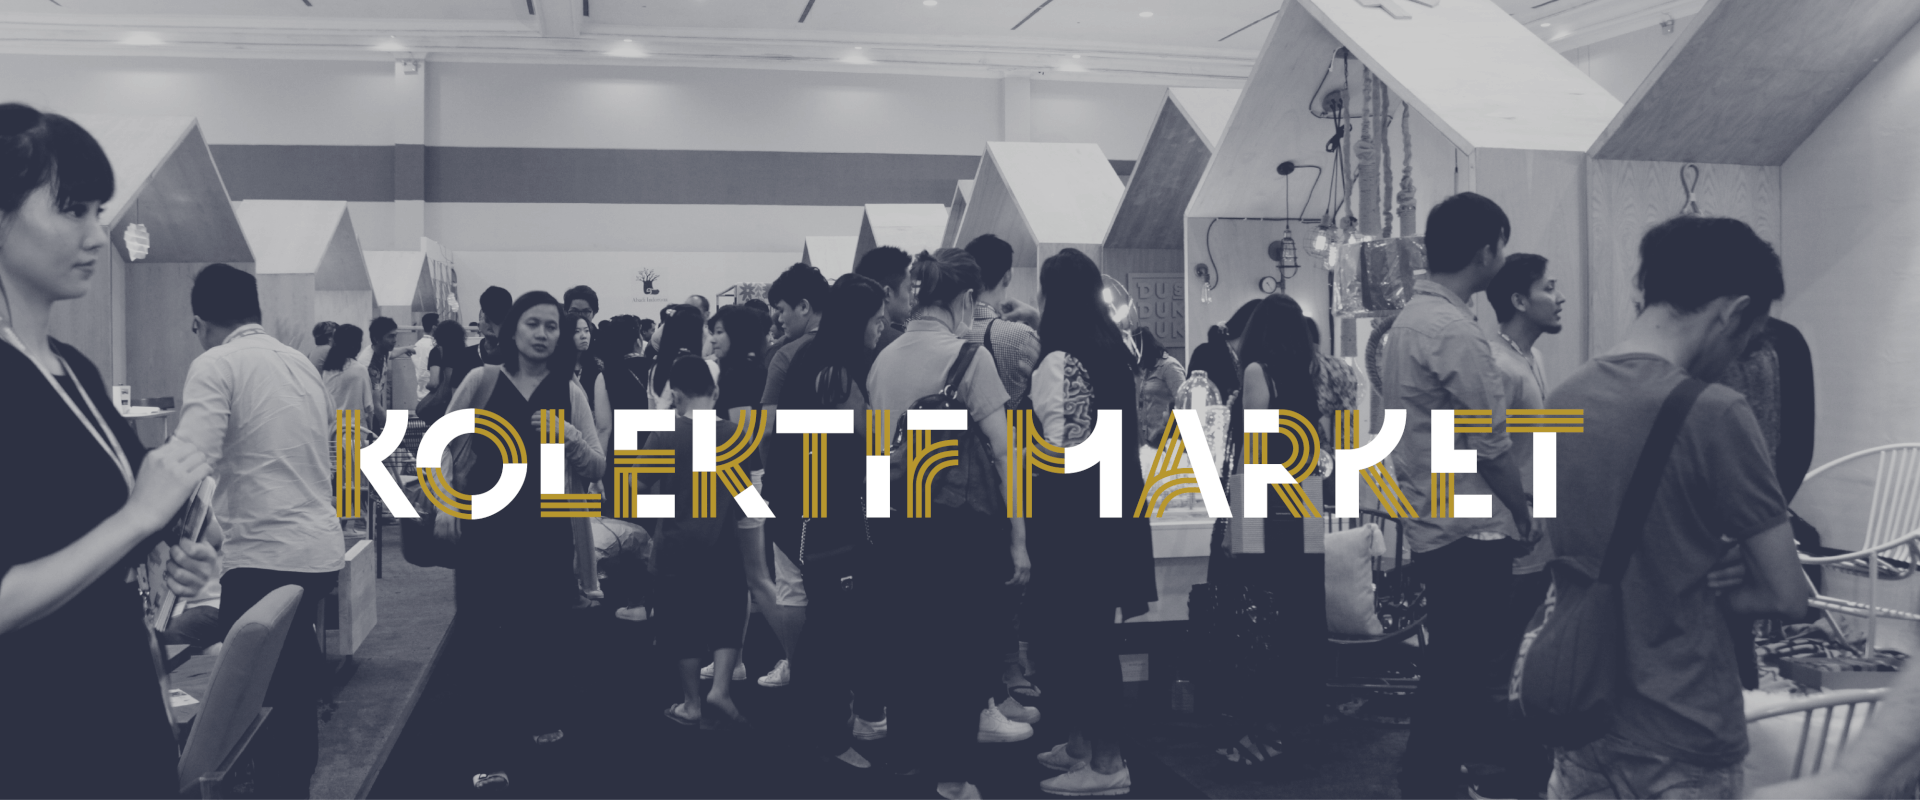 KolektifMarket-graphic-photo-type-08